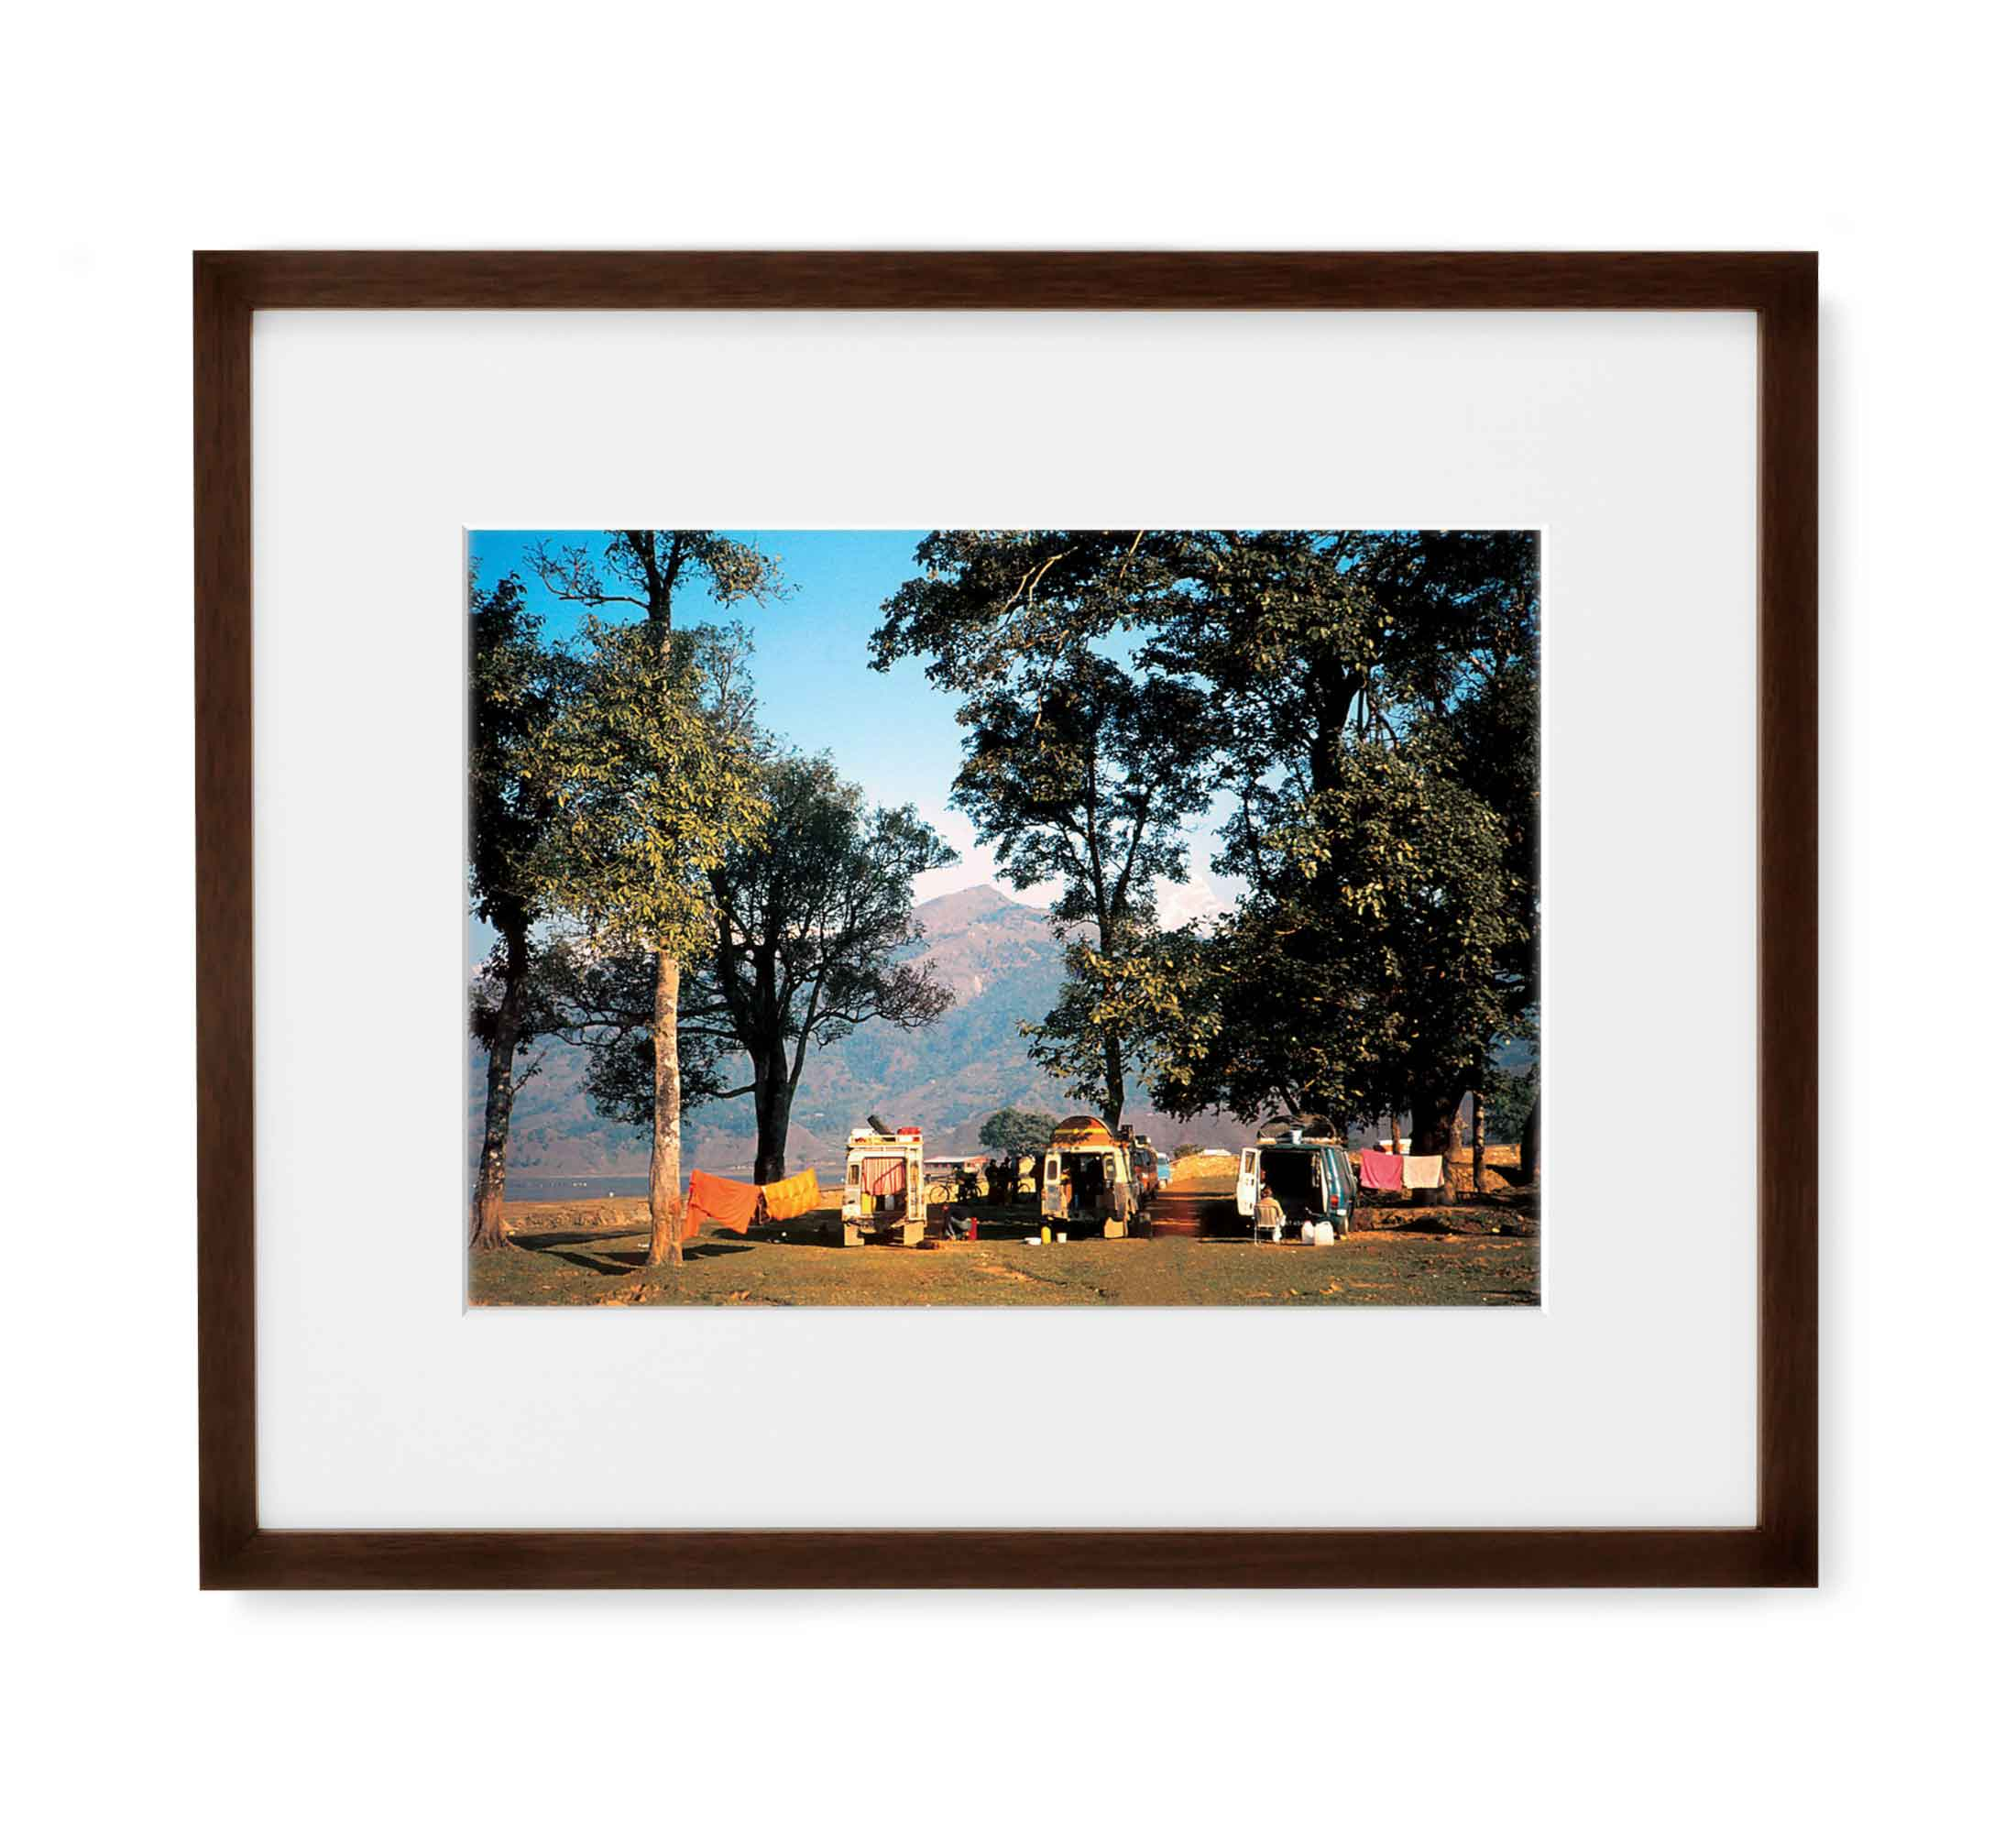 Himalayan Camp Framed Brown Wood